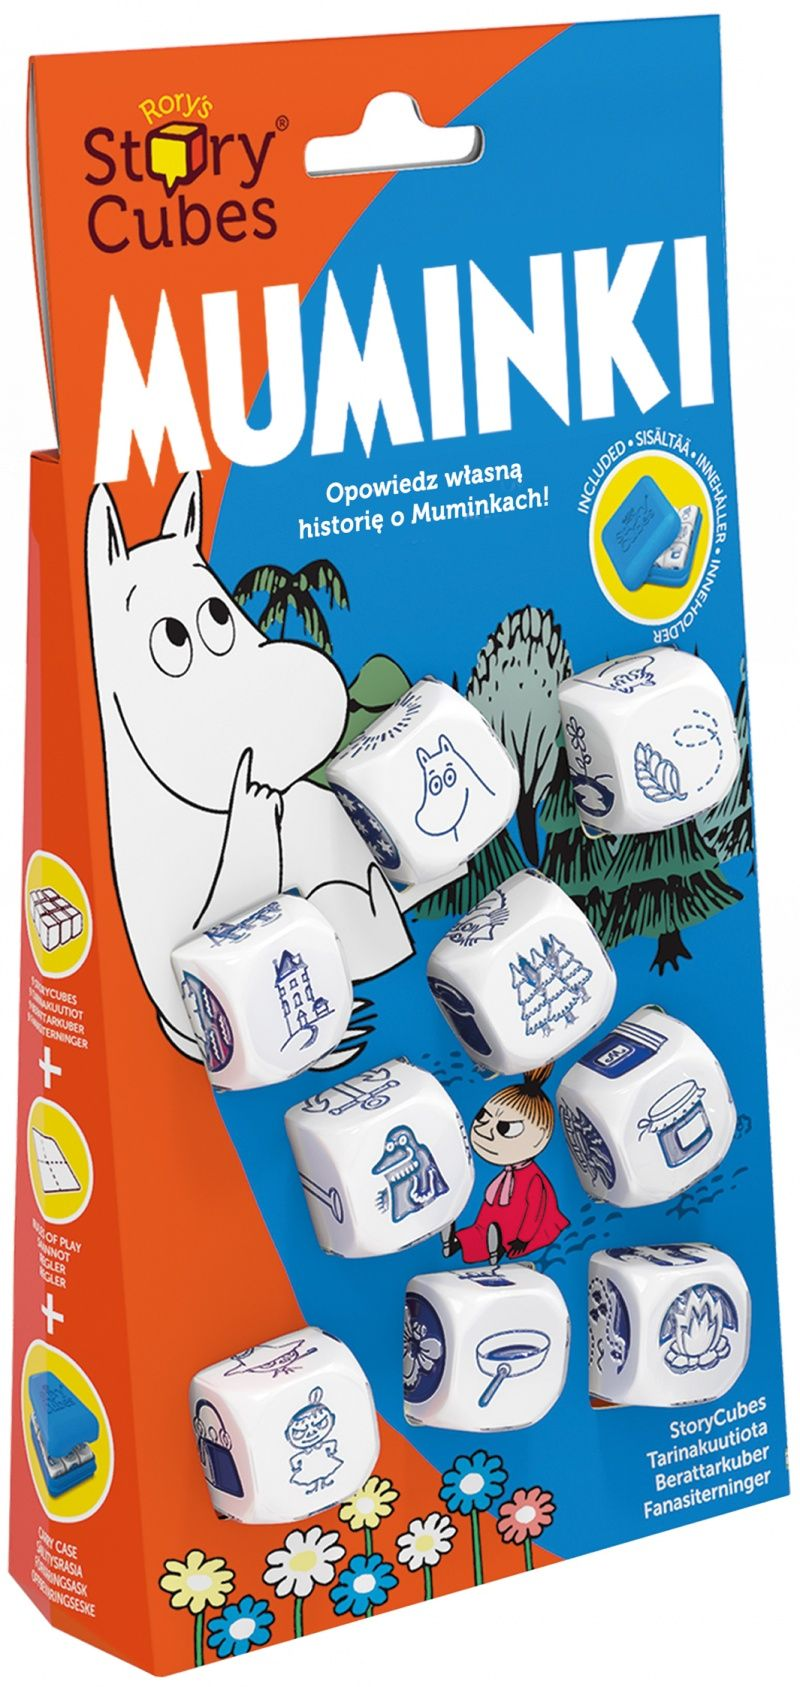 Story Cubes Muminki Story Cubes Cube Frosted Flakes Cereal Box